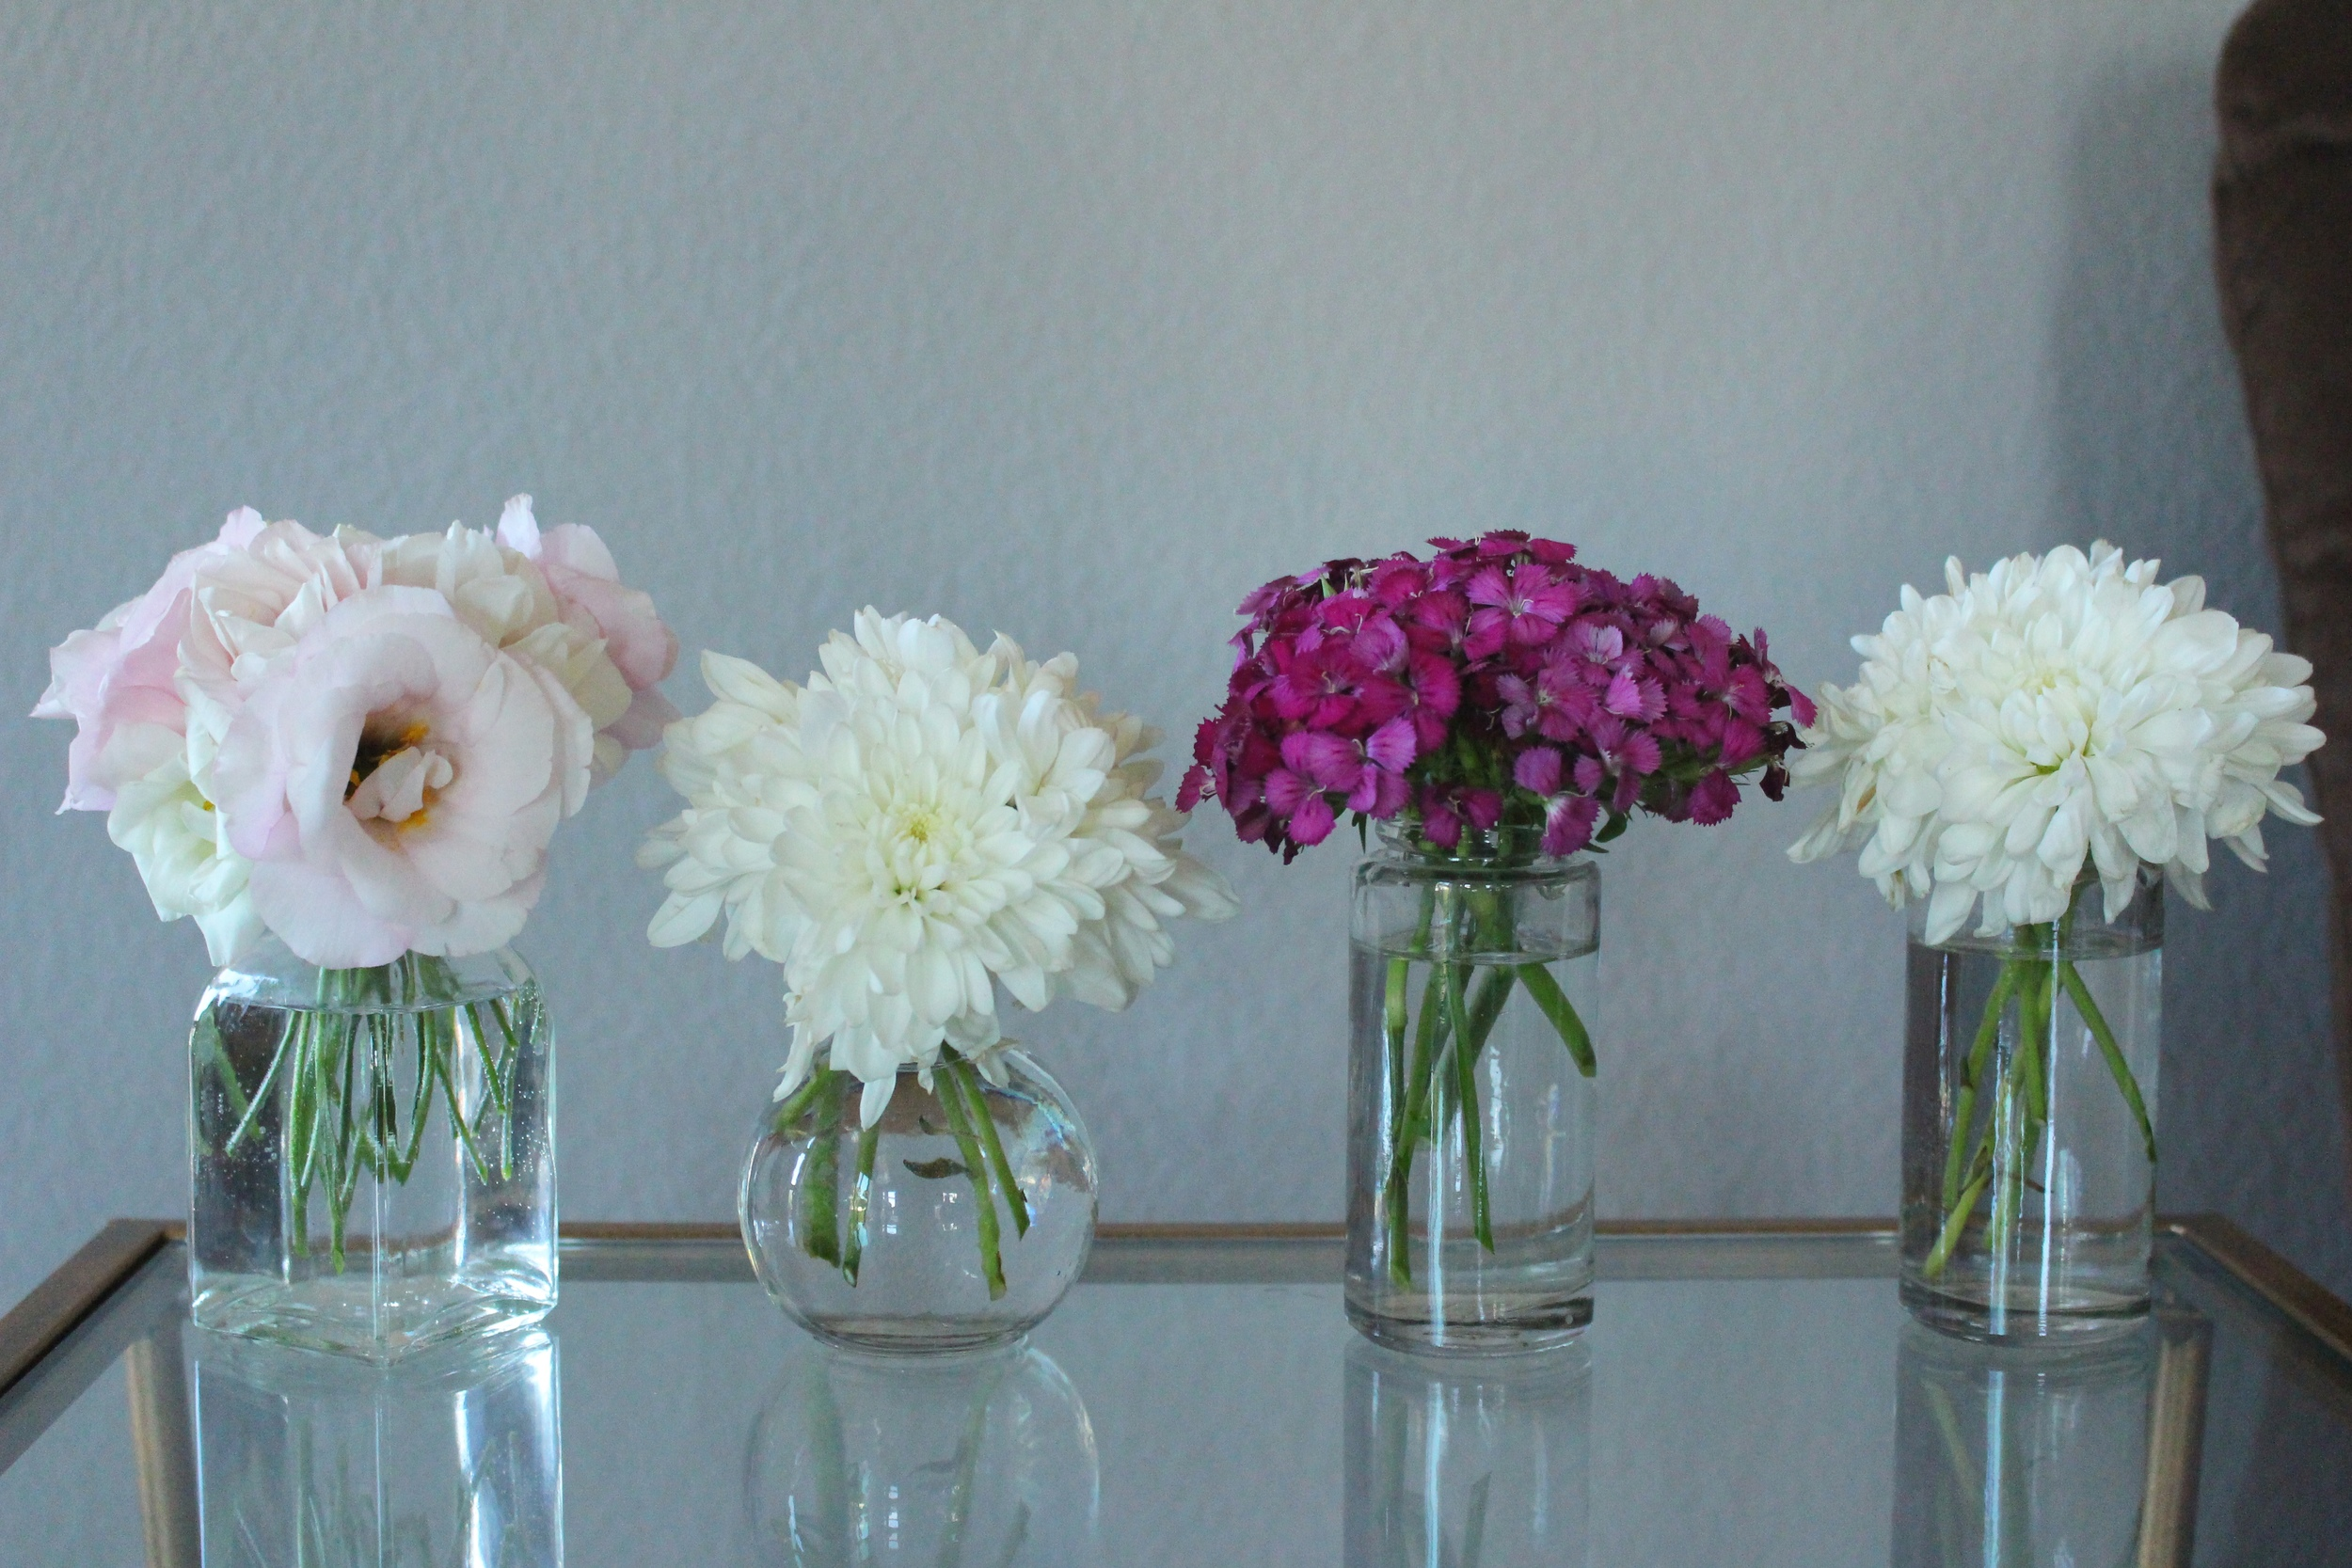 Blush tones and bud vases to brighten up the place.